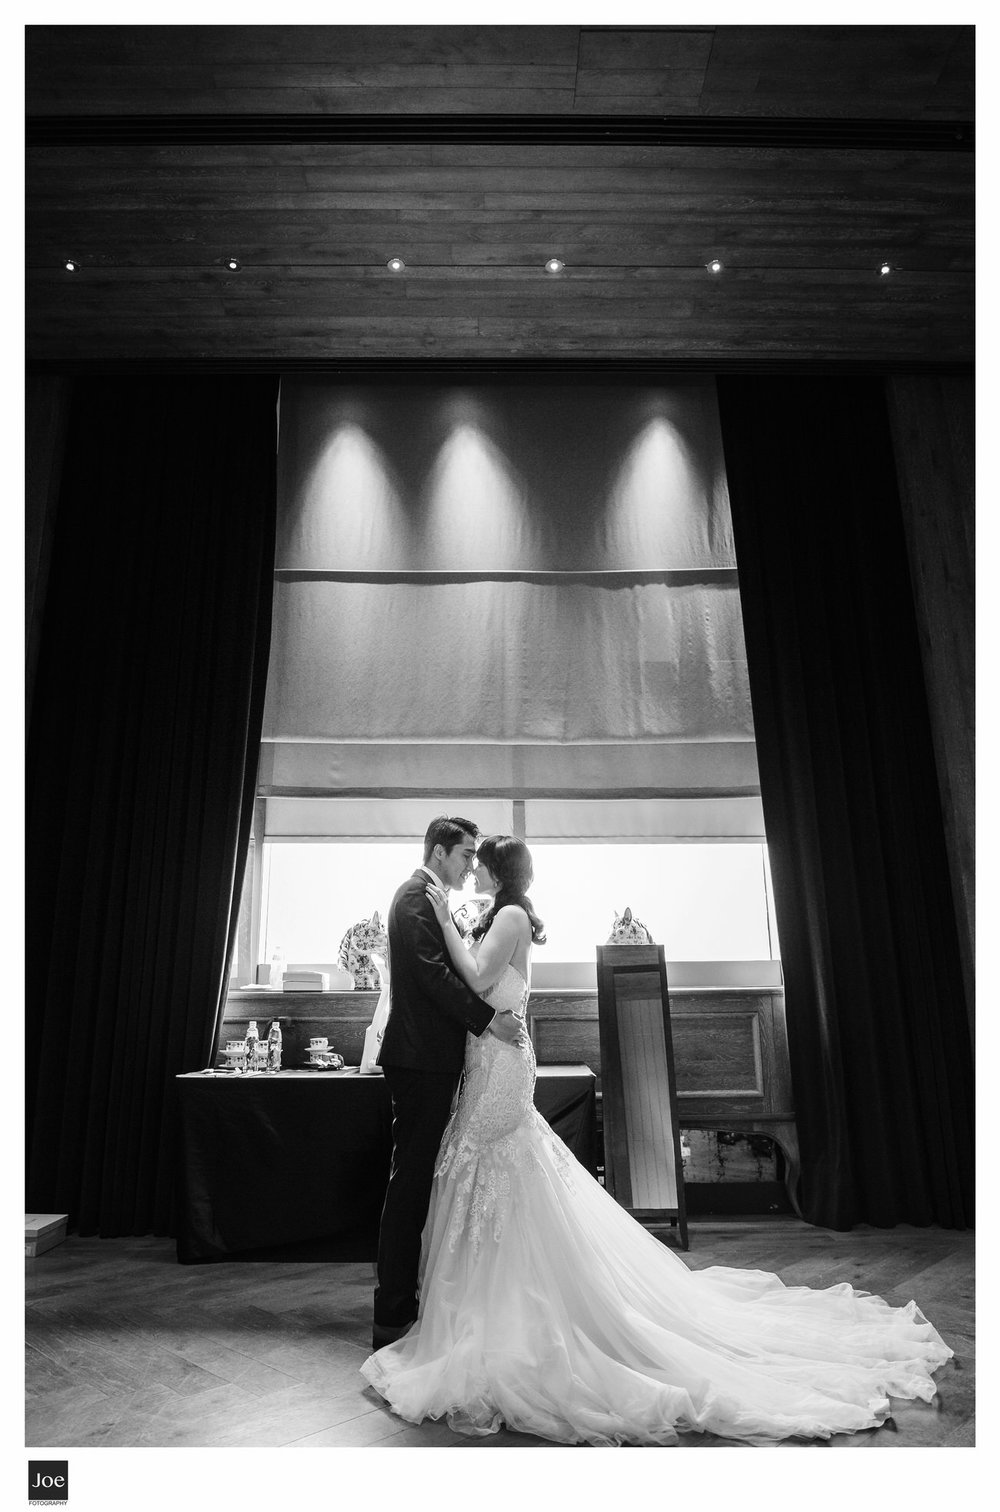 joe-fotography-wedding-photo-palais-de-chine-hotel-074.jpg